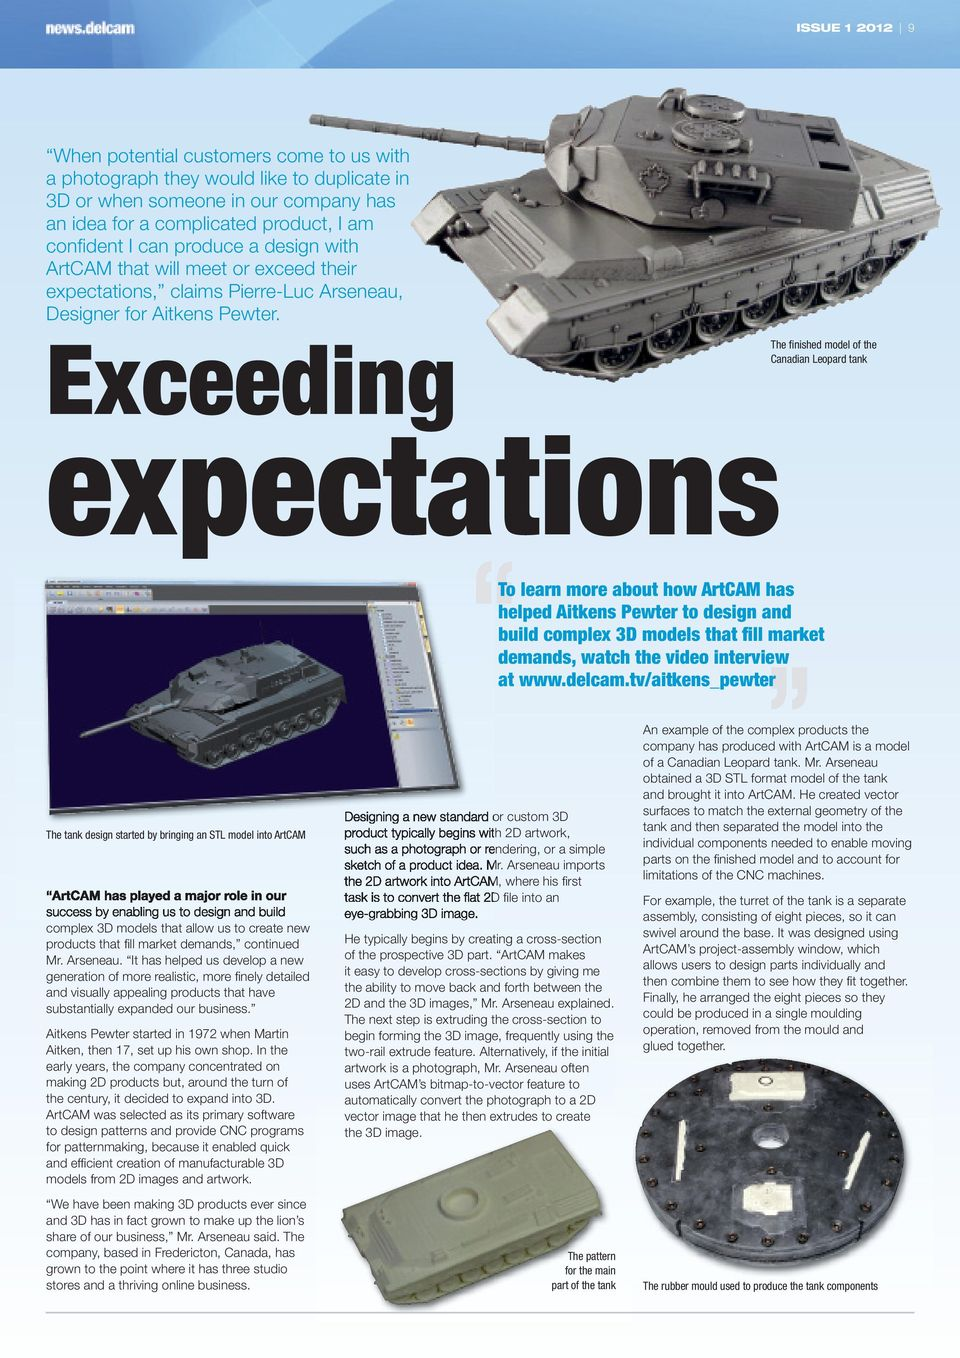 Exceeding The finished model of the Canadian Leopard tank expectations The tank design started by bringing an STL model into ArtCAM ArtCAM has played a major role in our success by enabling us to